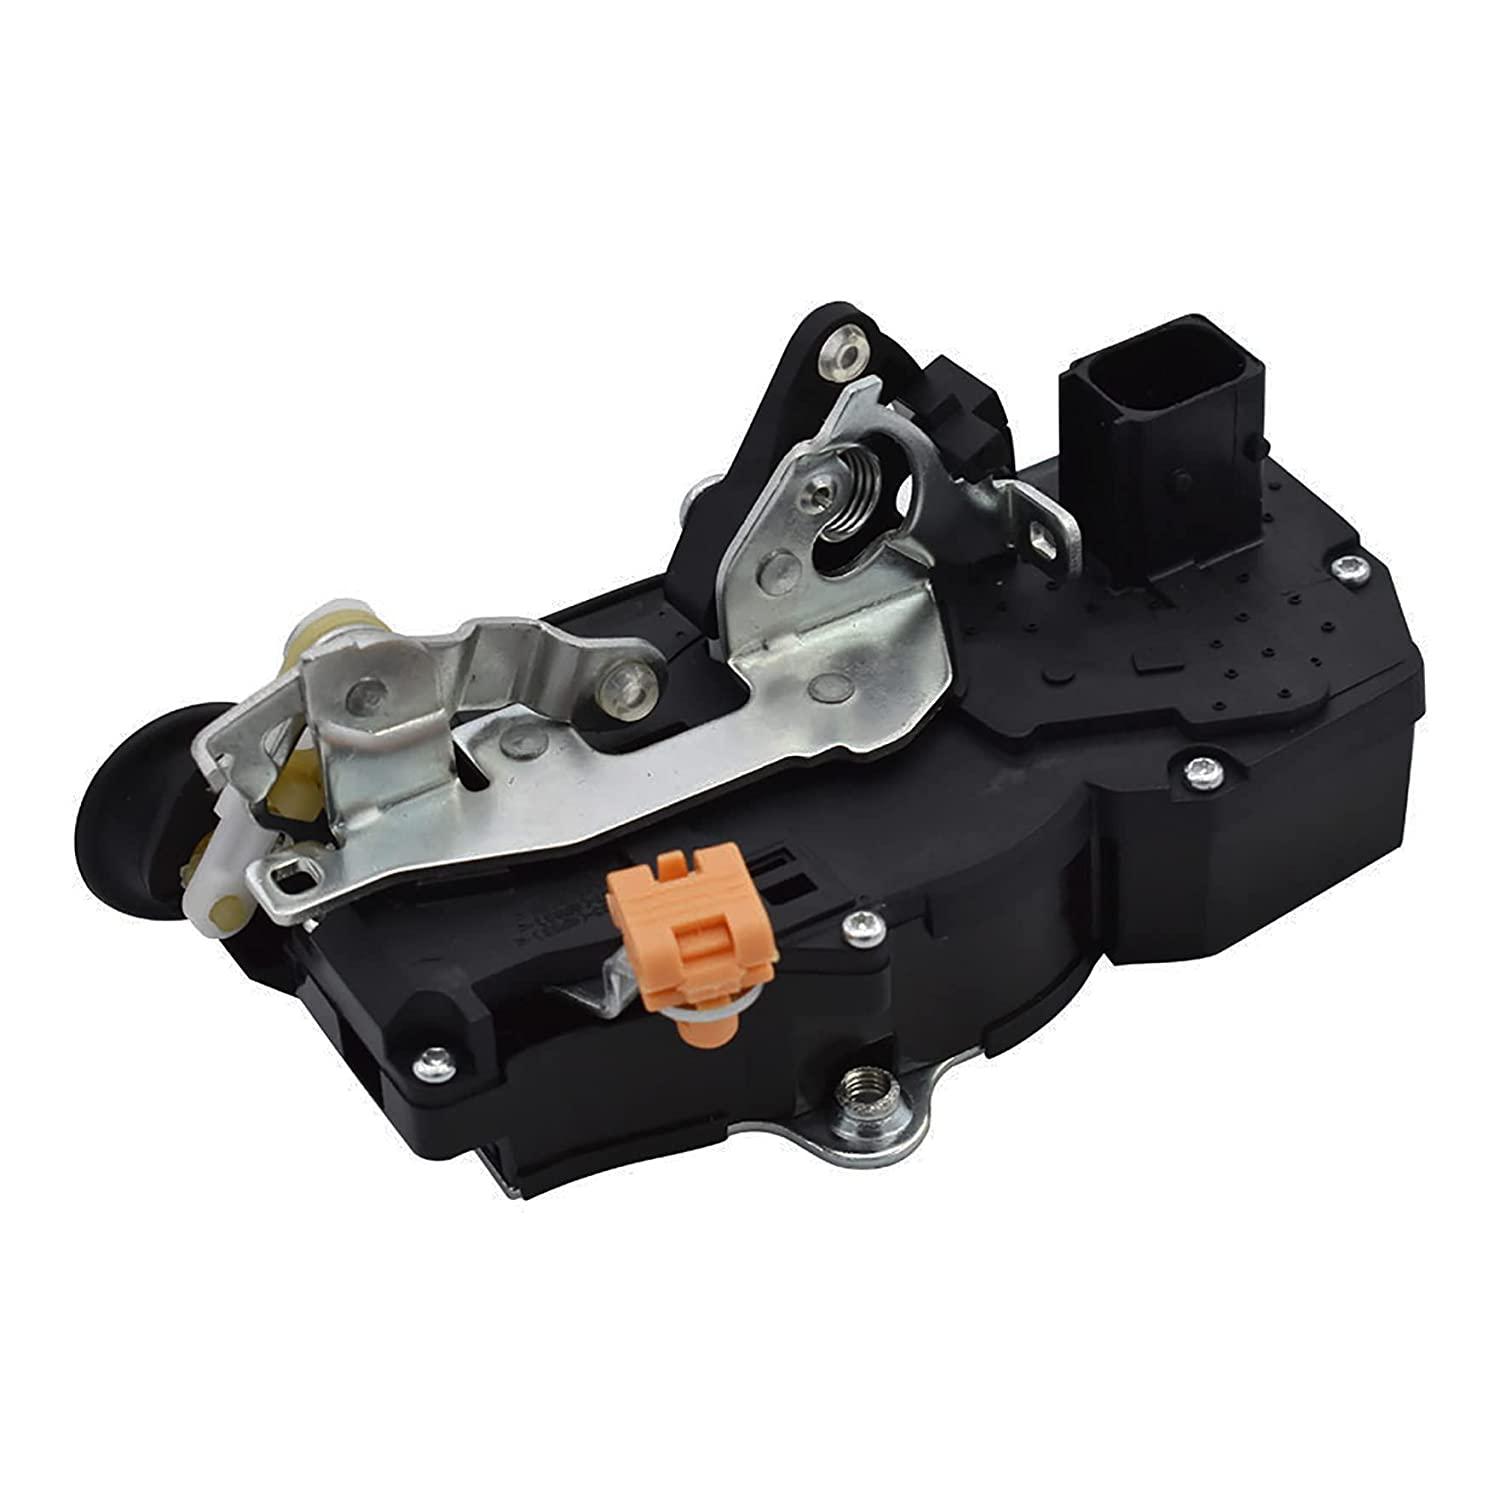 waltyotur Rear Driver Left All items in the store Side Door 1 Latch Motor Actuator 2021 spring and summer new Lock